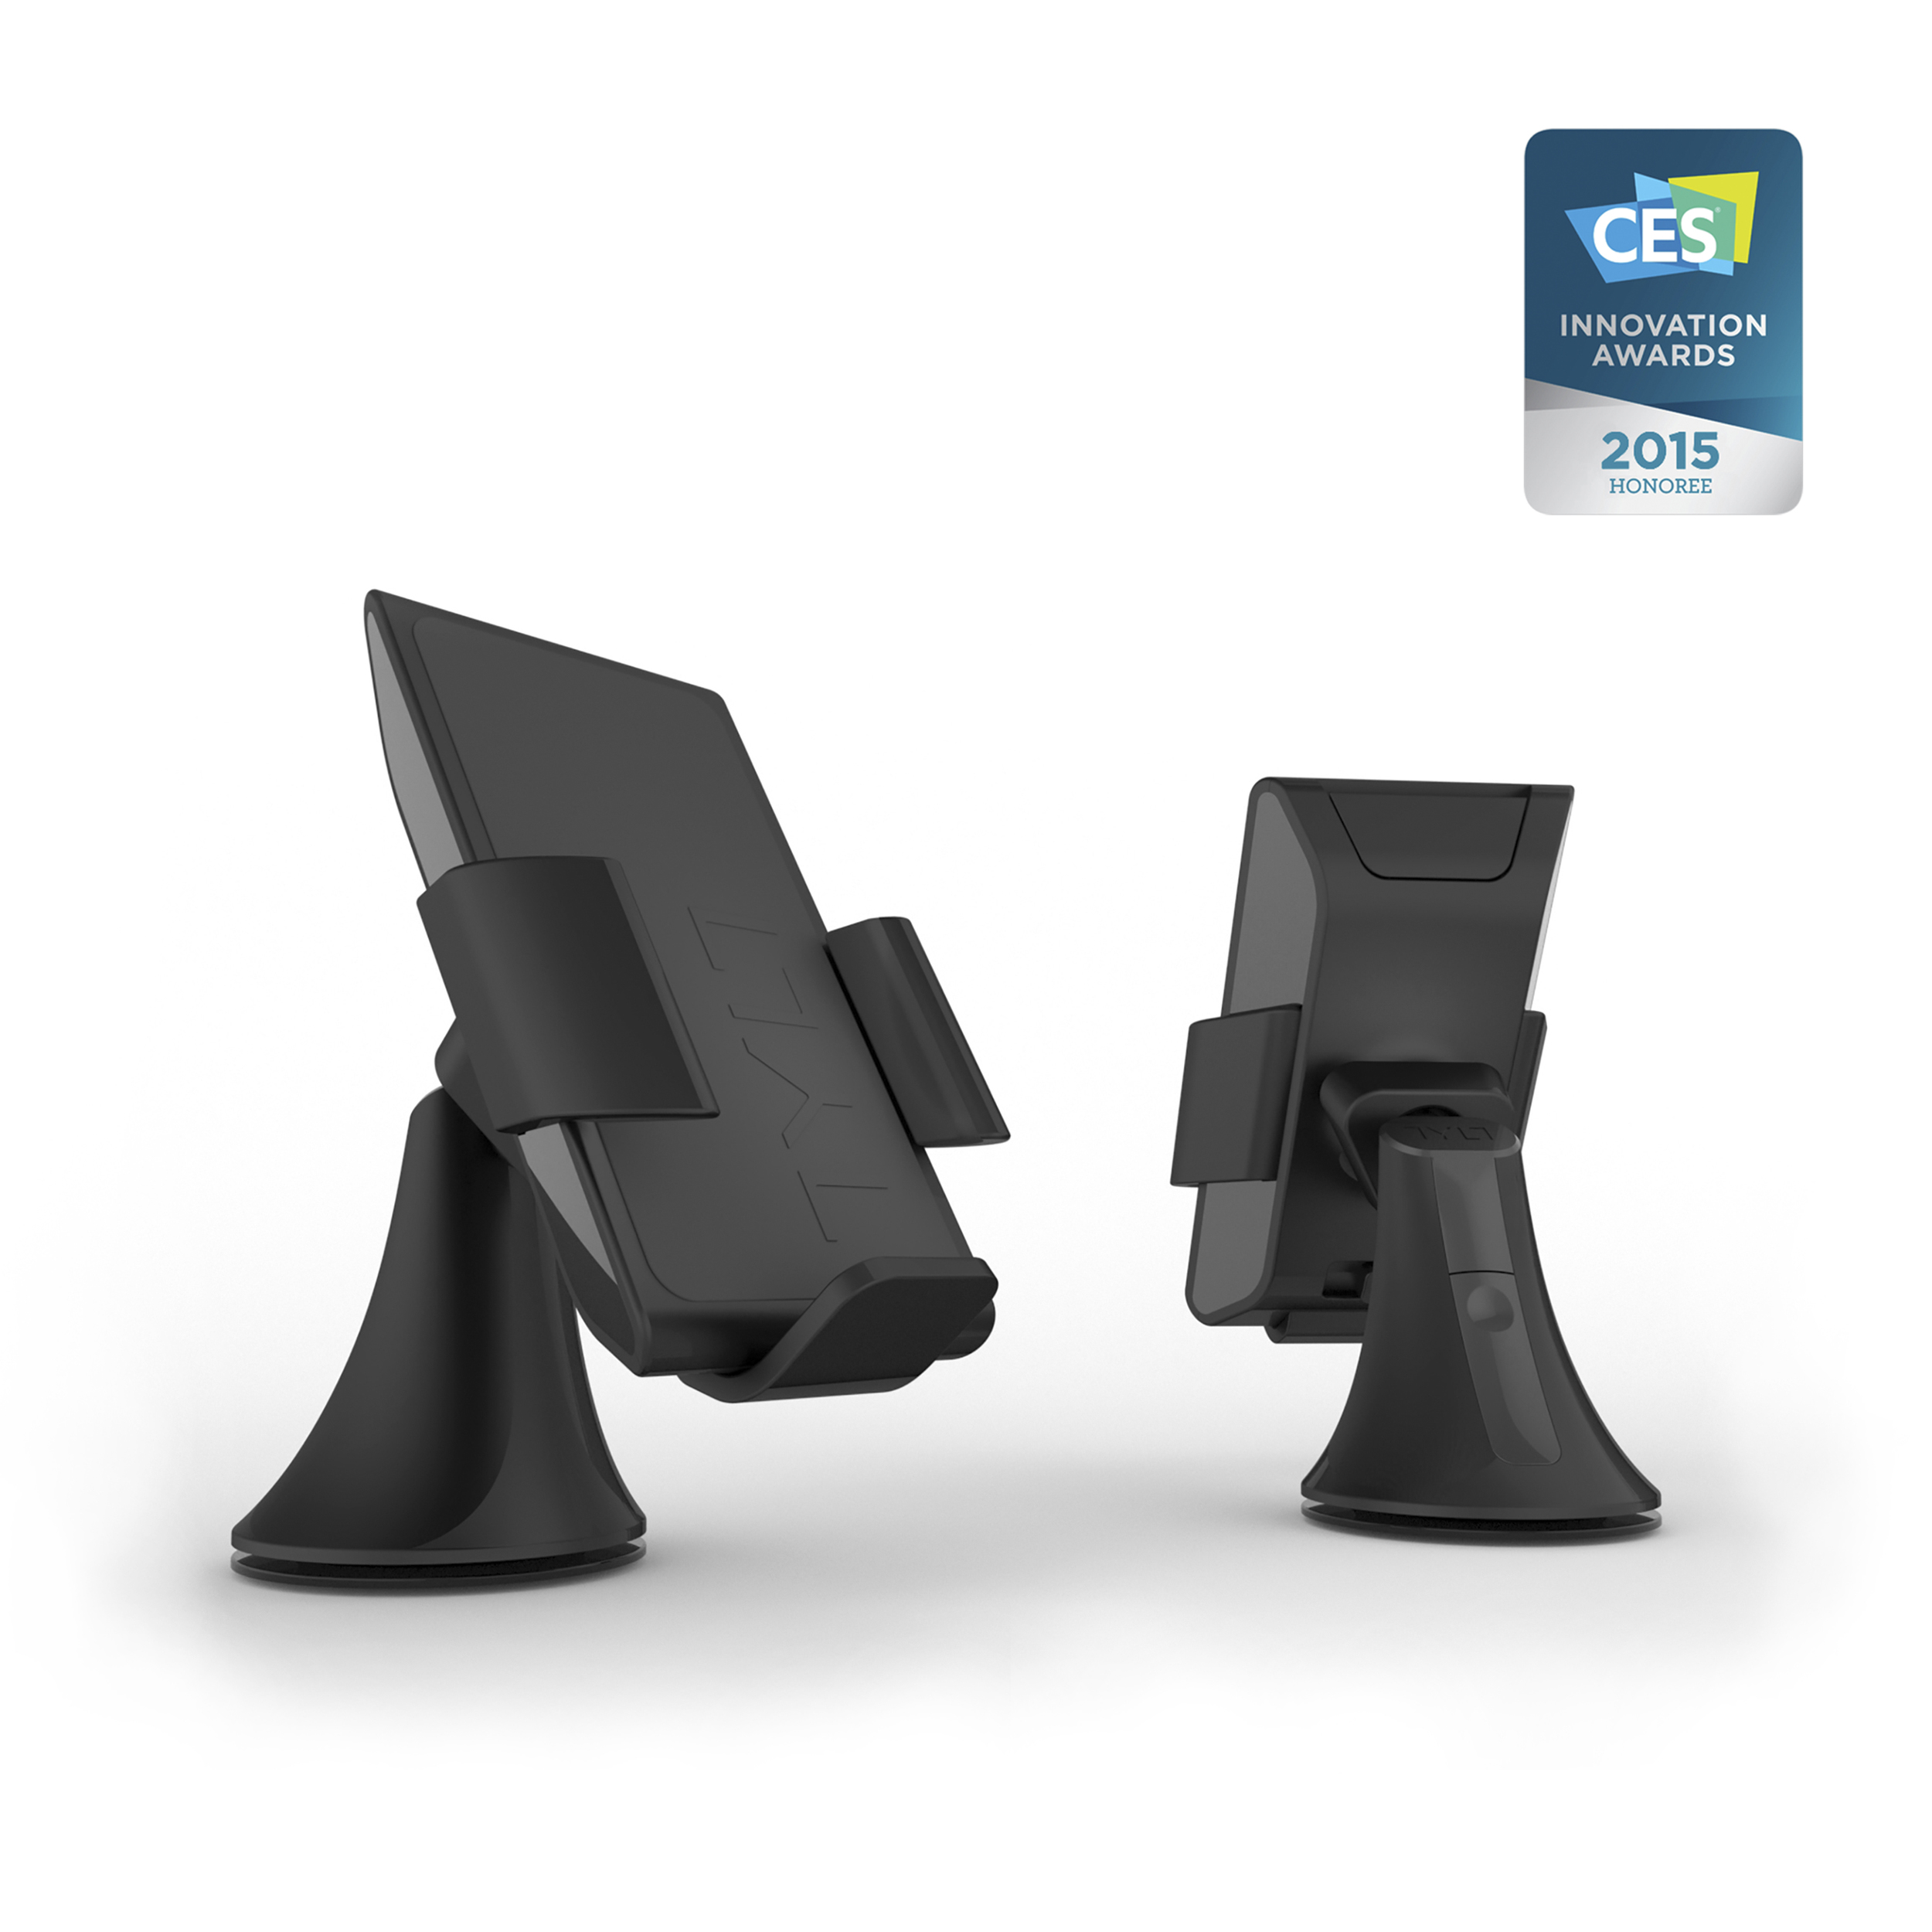 TYLT VU Charging Car Mount   CES Innovation Awards – Honoree